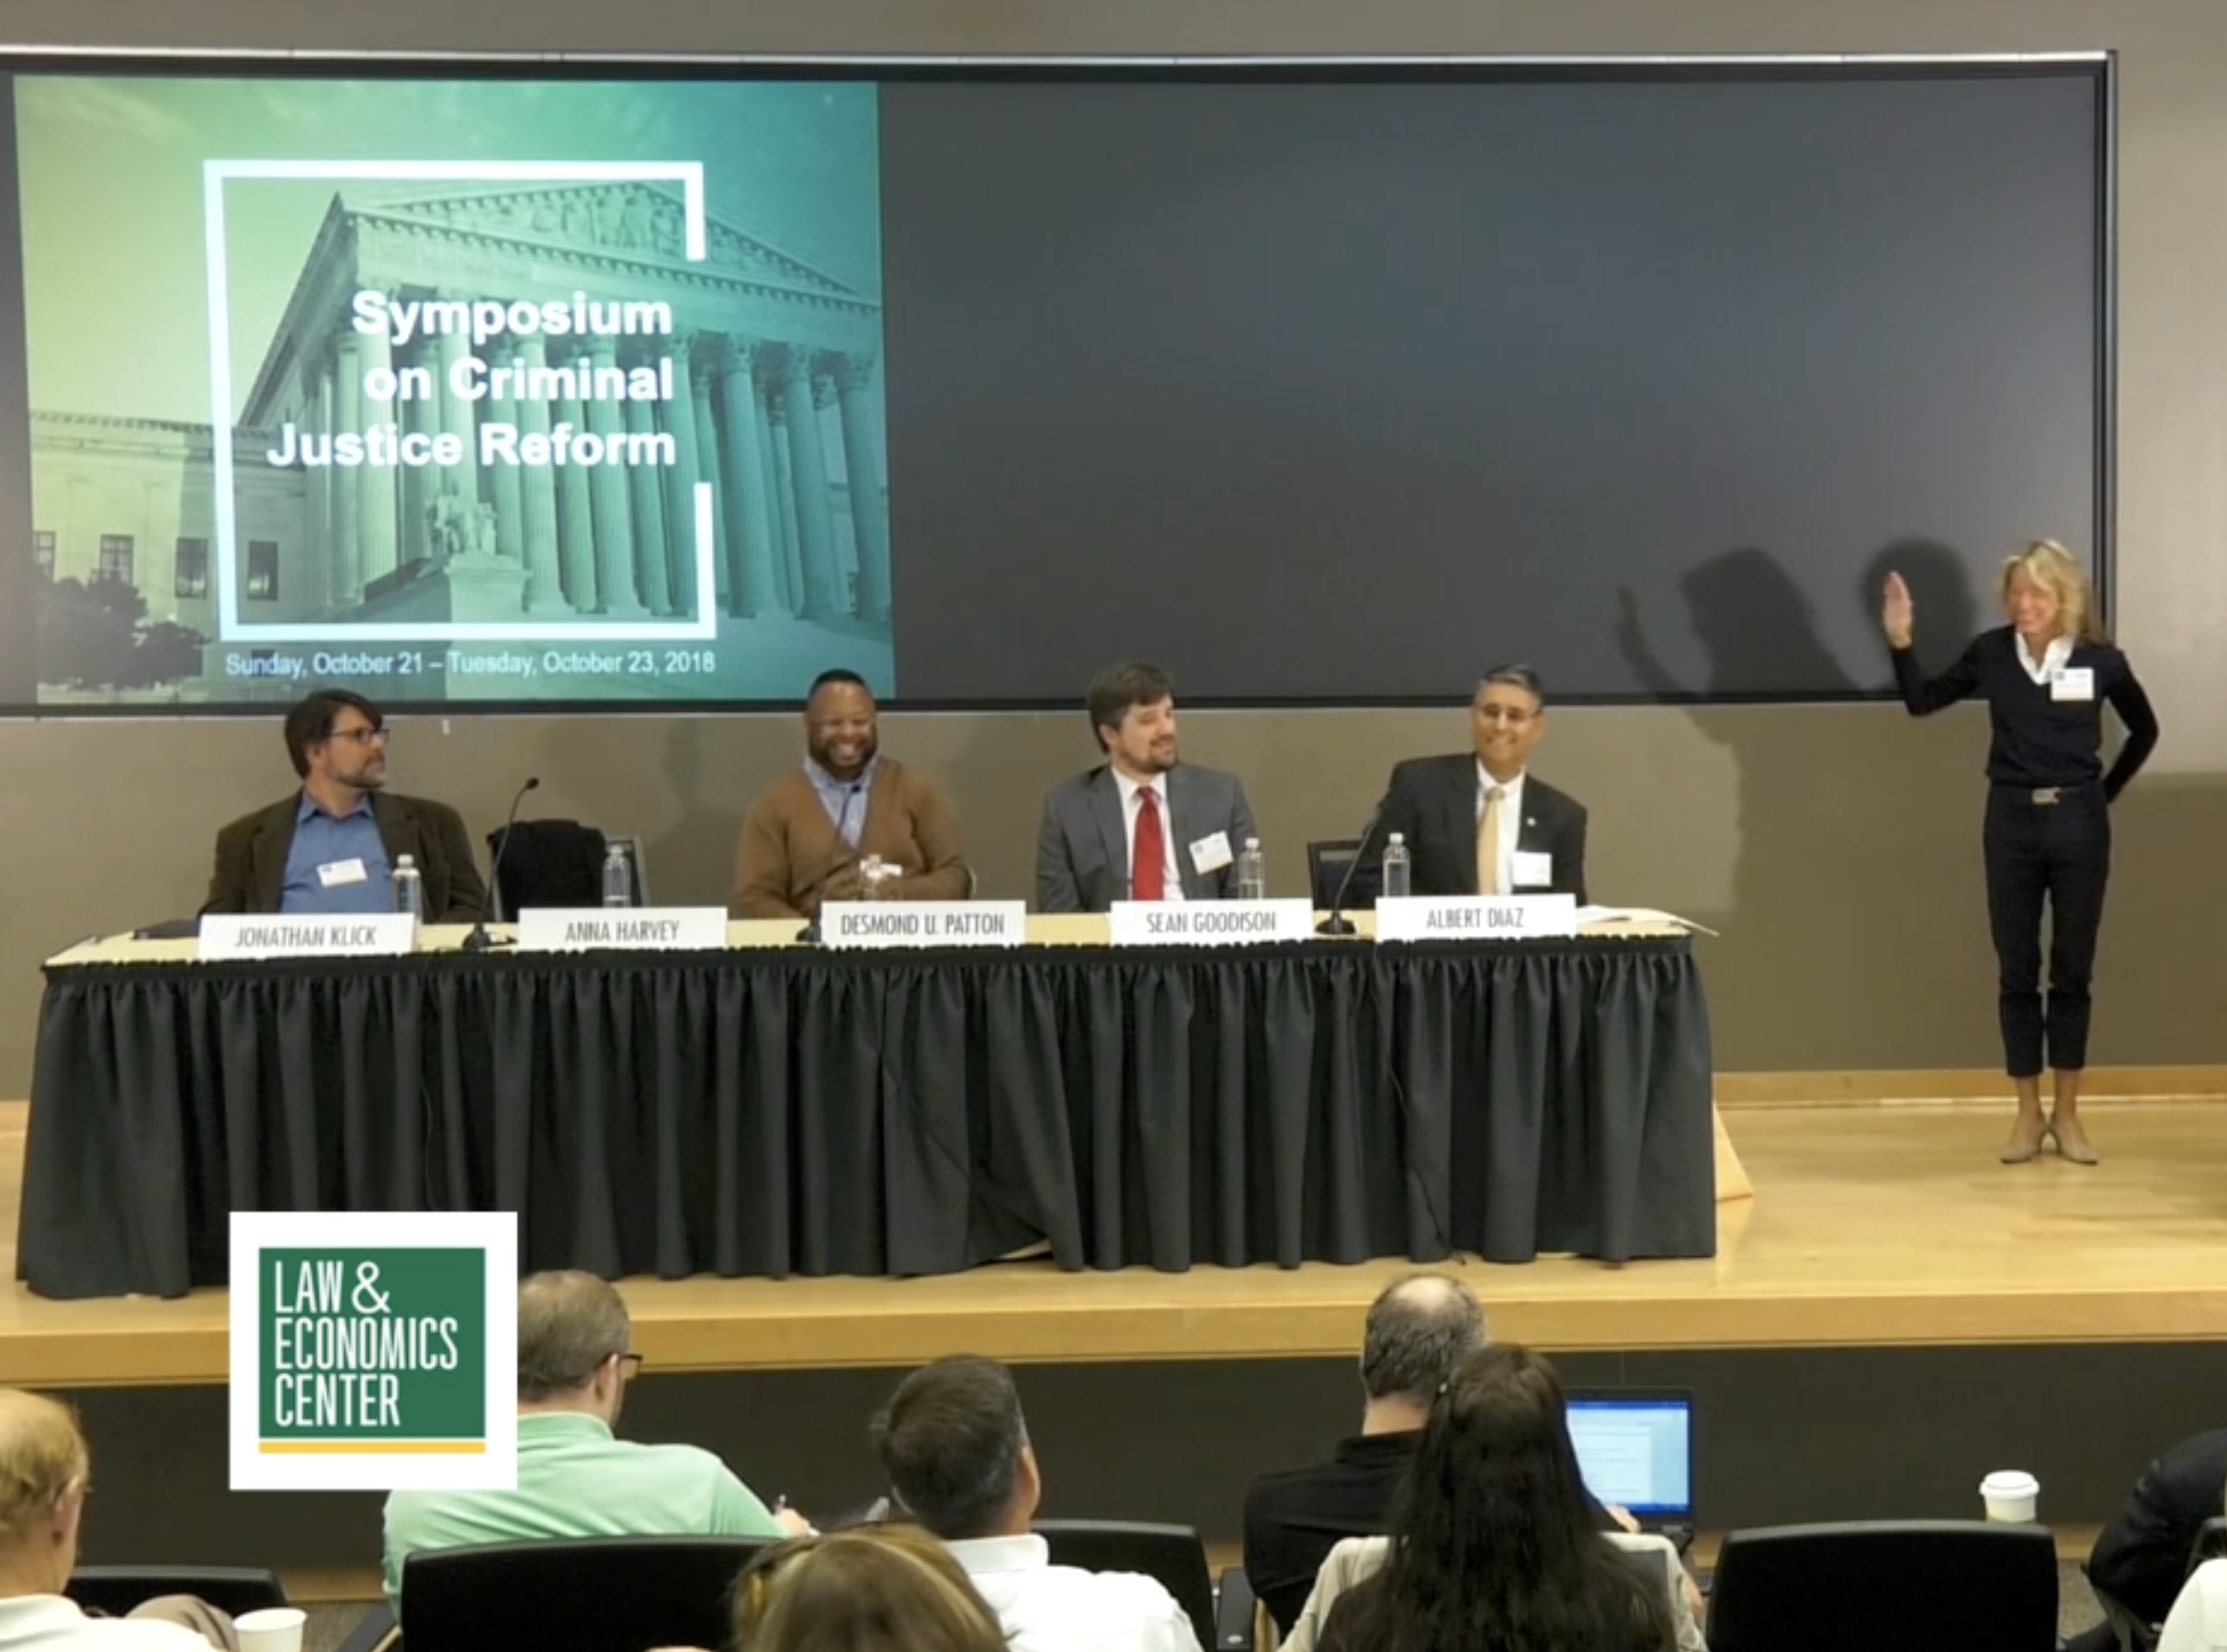 The New Technology of Policing; George Mason University October 2018 - Jonathan Klick, Professor of Law, University of Pennsylvania; Anna Harvey, Professor of Politics and Director, Public Safety Lab, New York University; Desmond Patton, Associate Professor of Social Work, Columbia University; Sean Goodison, Deputy Director, Police Executive Research Forum; Hon. Judge Albert Diaz, United States Court of Appeals for the 4th Circuit